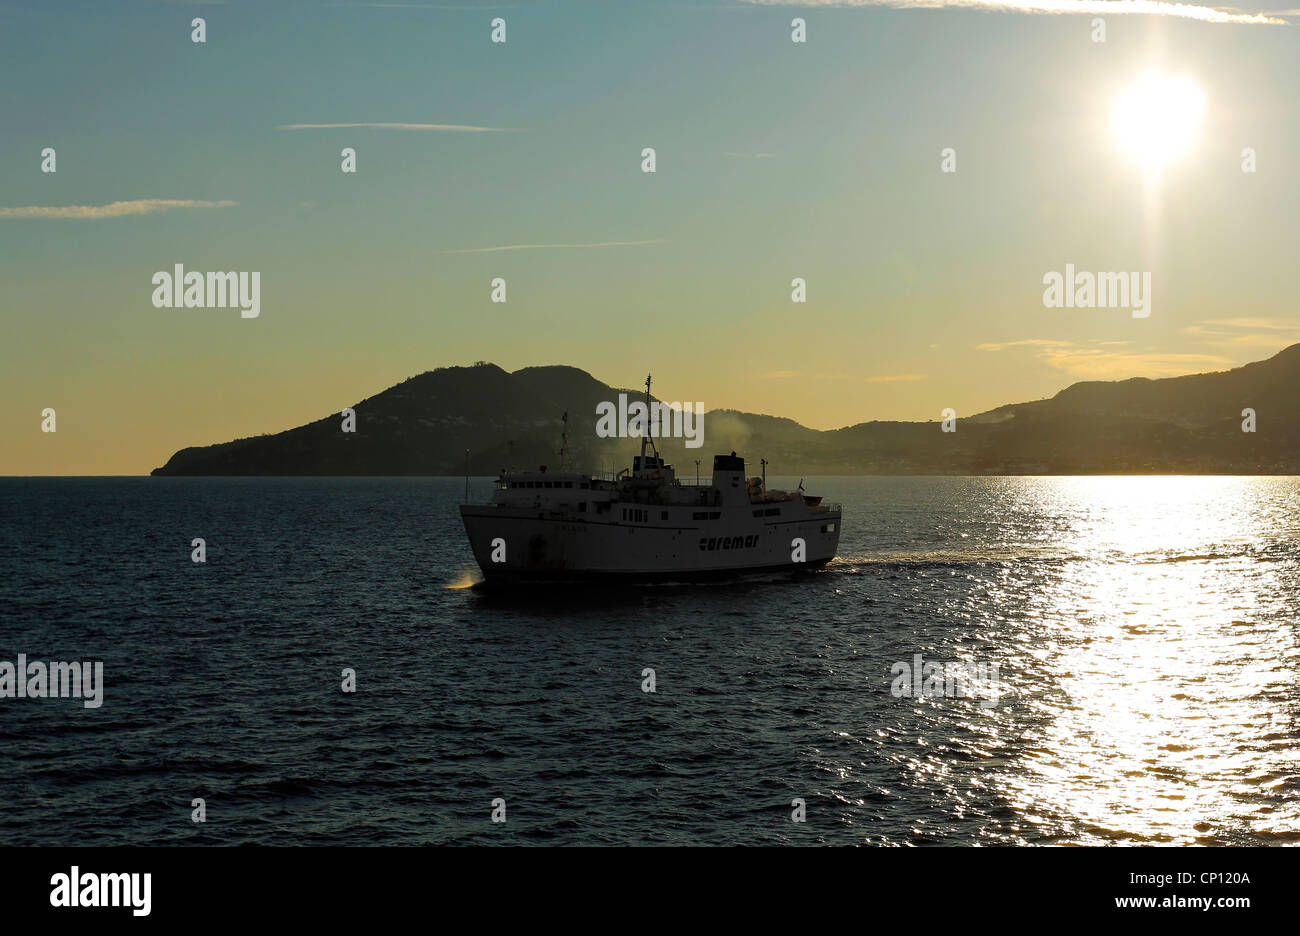 Caremar Ferry Boat in the Gulf of Naples, Campania, Italy - Stock Image